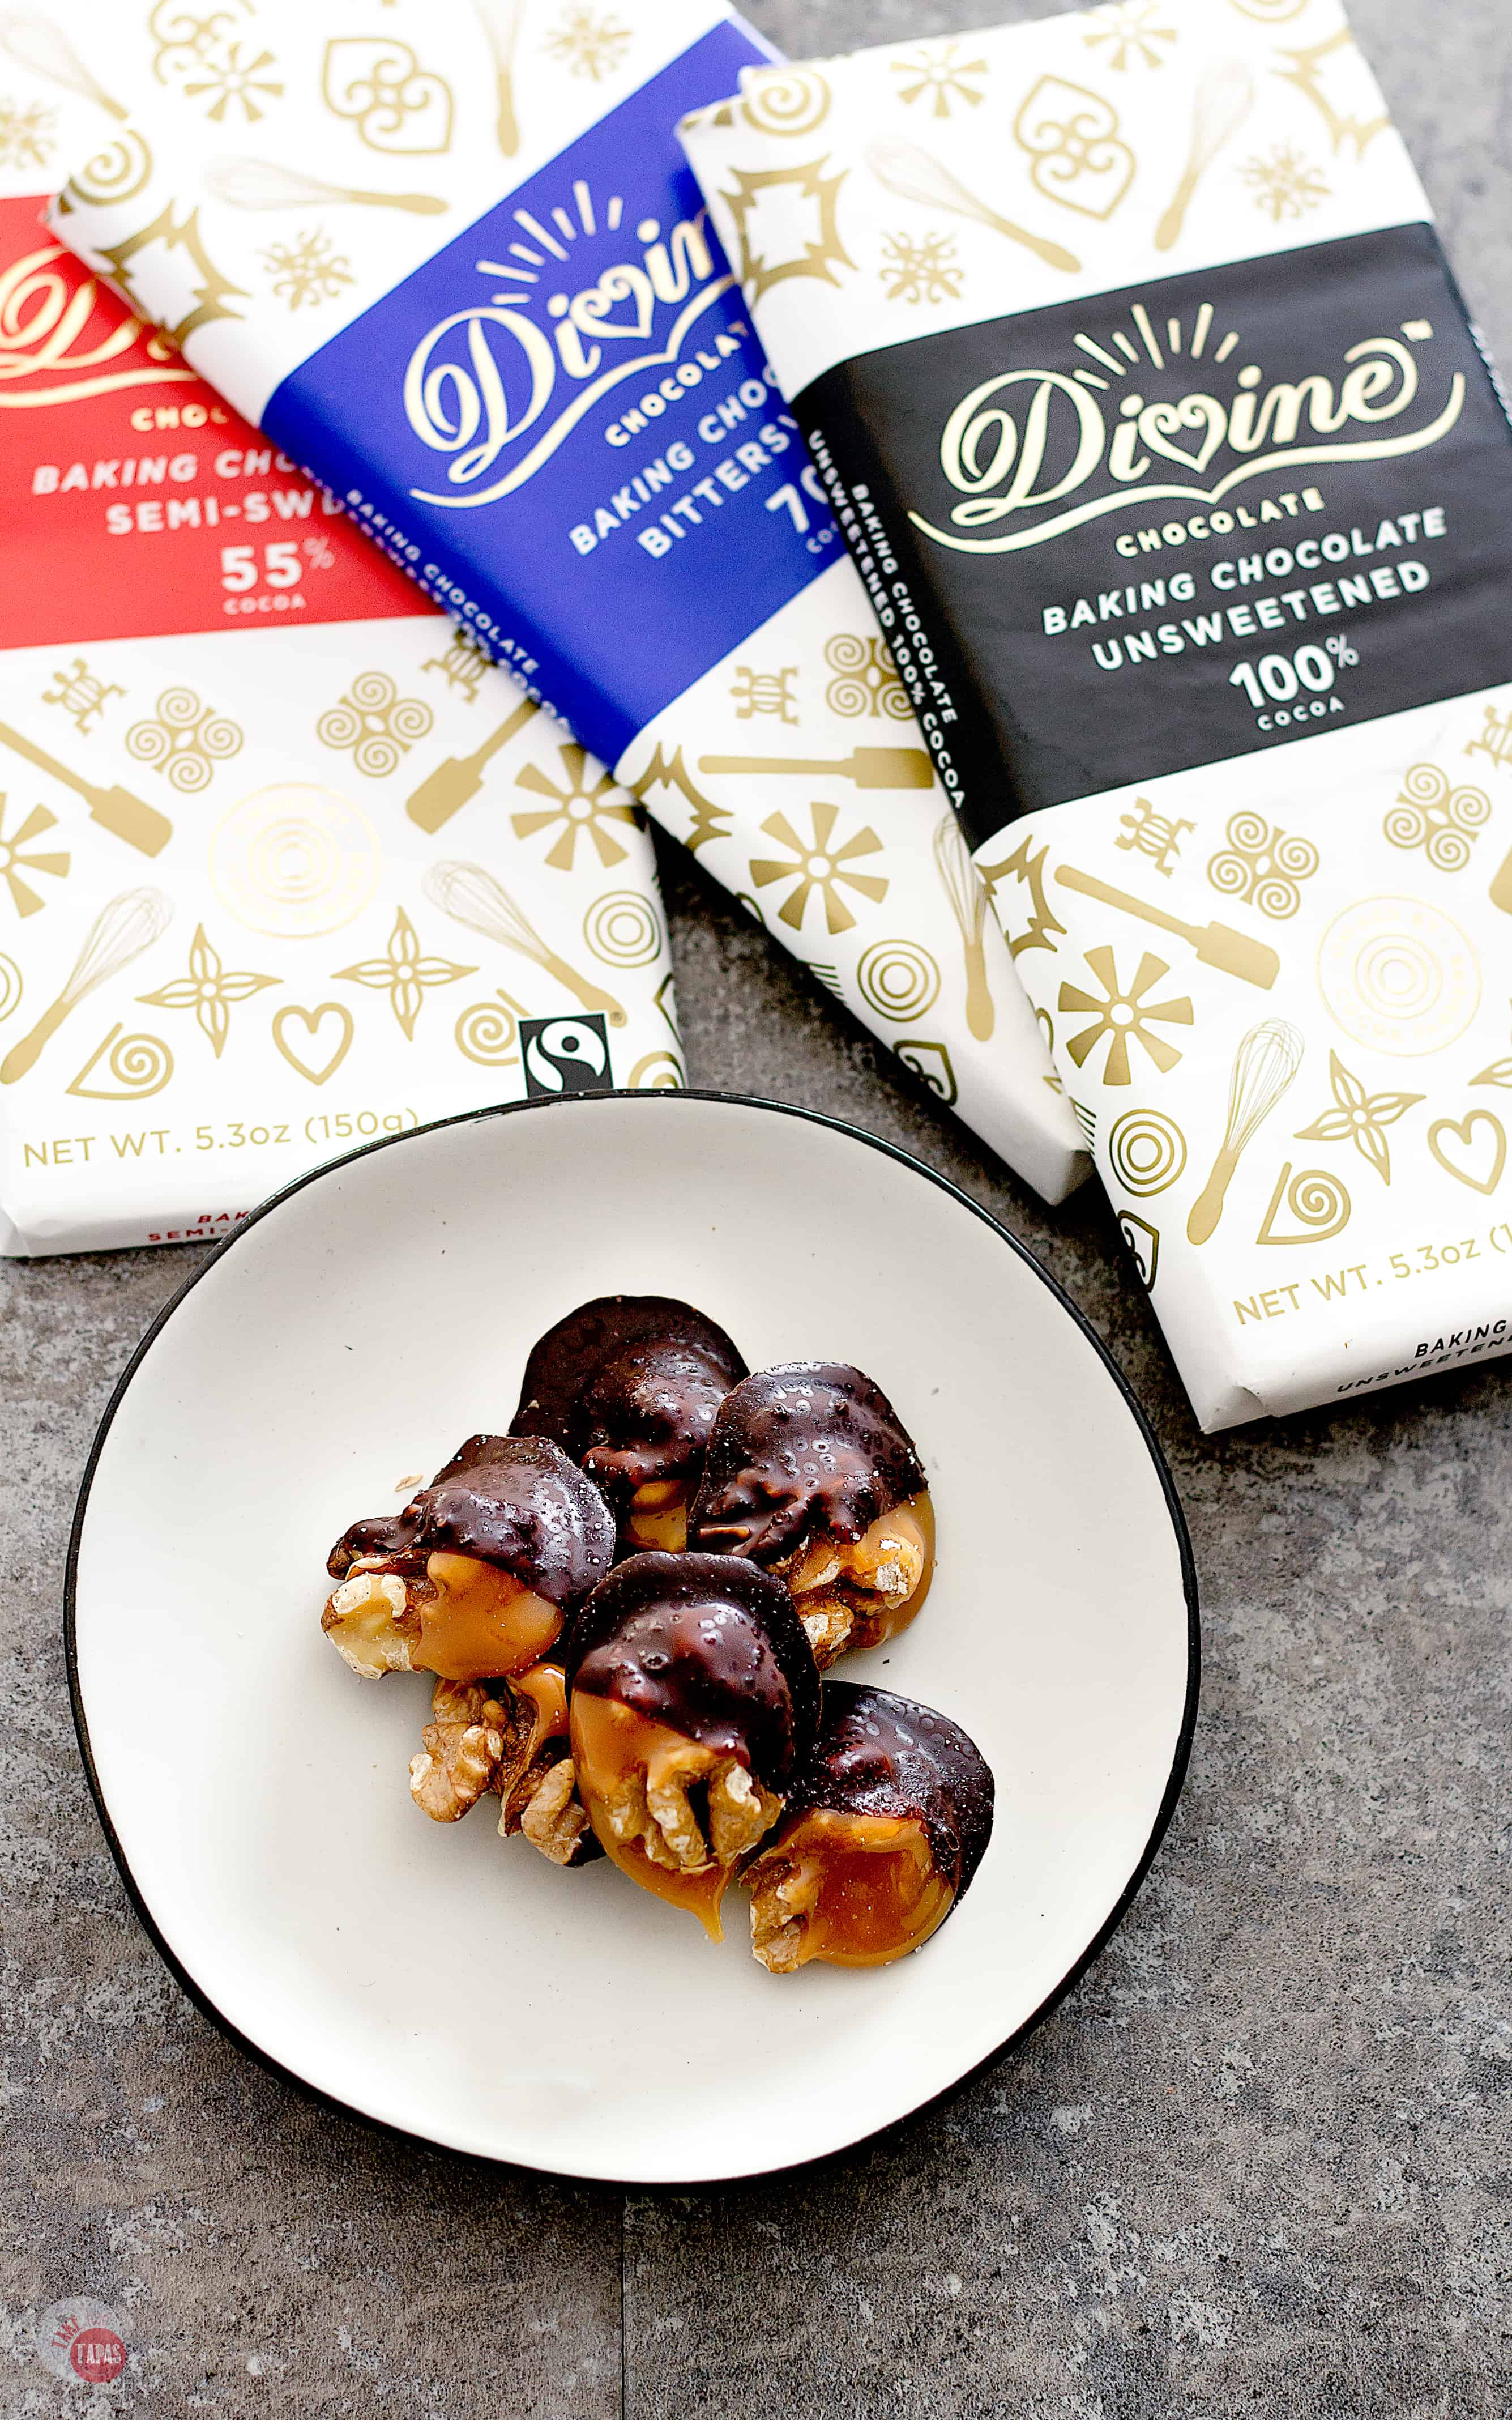 Walnut Amaretto Truffles are dipped in caramel and dark or bittersweet chocolate   Take Two Tapas   #AD #MakeSomethingDivine @divinechocusa #Choctoberfest